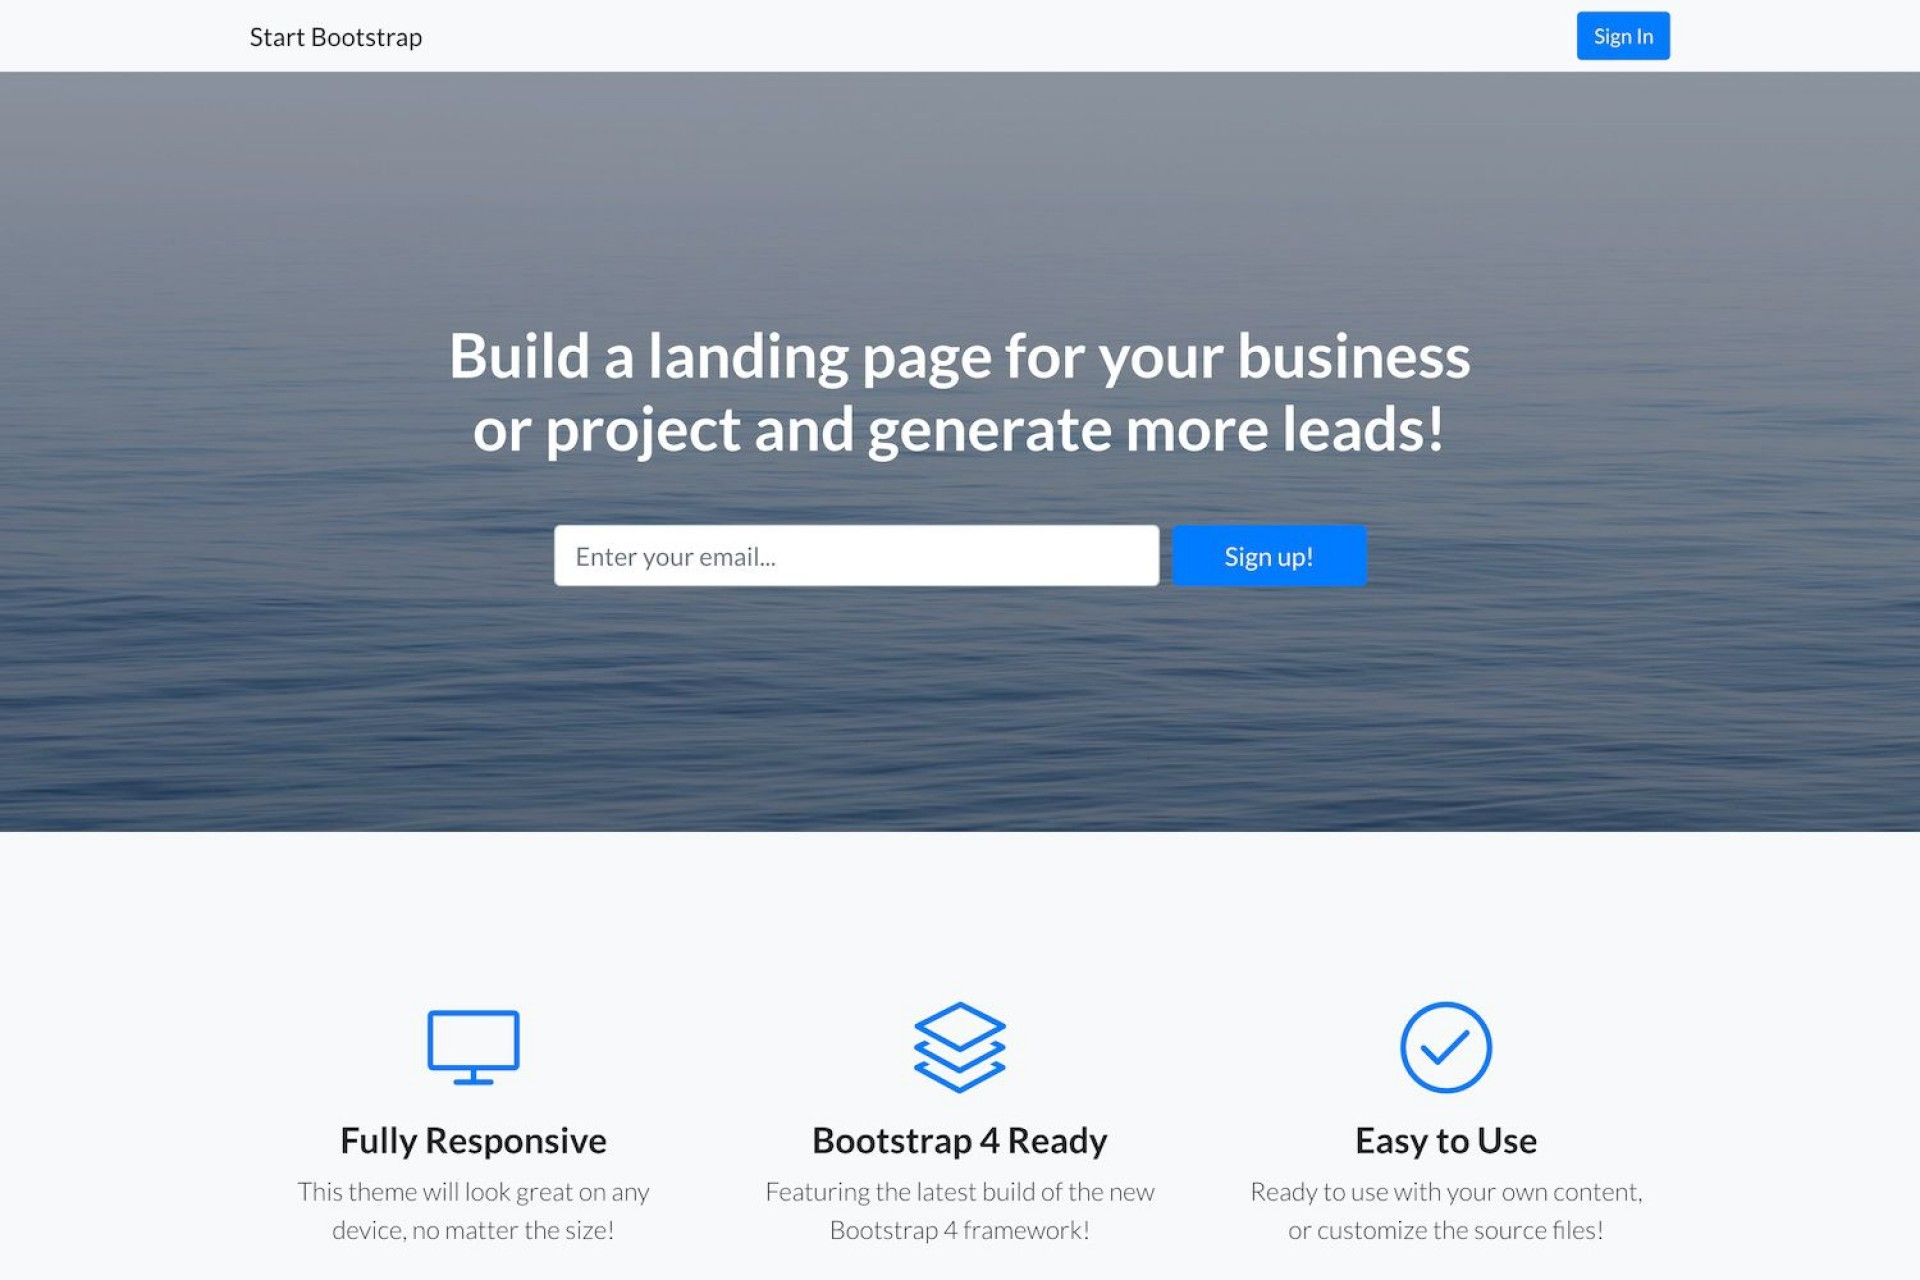 005 Formidable Simple Landing Page Template Idea  Html Bootstrap Free1920